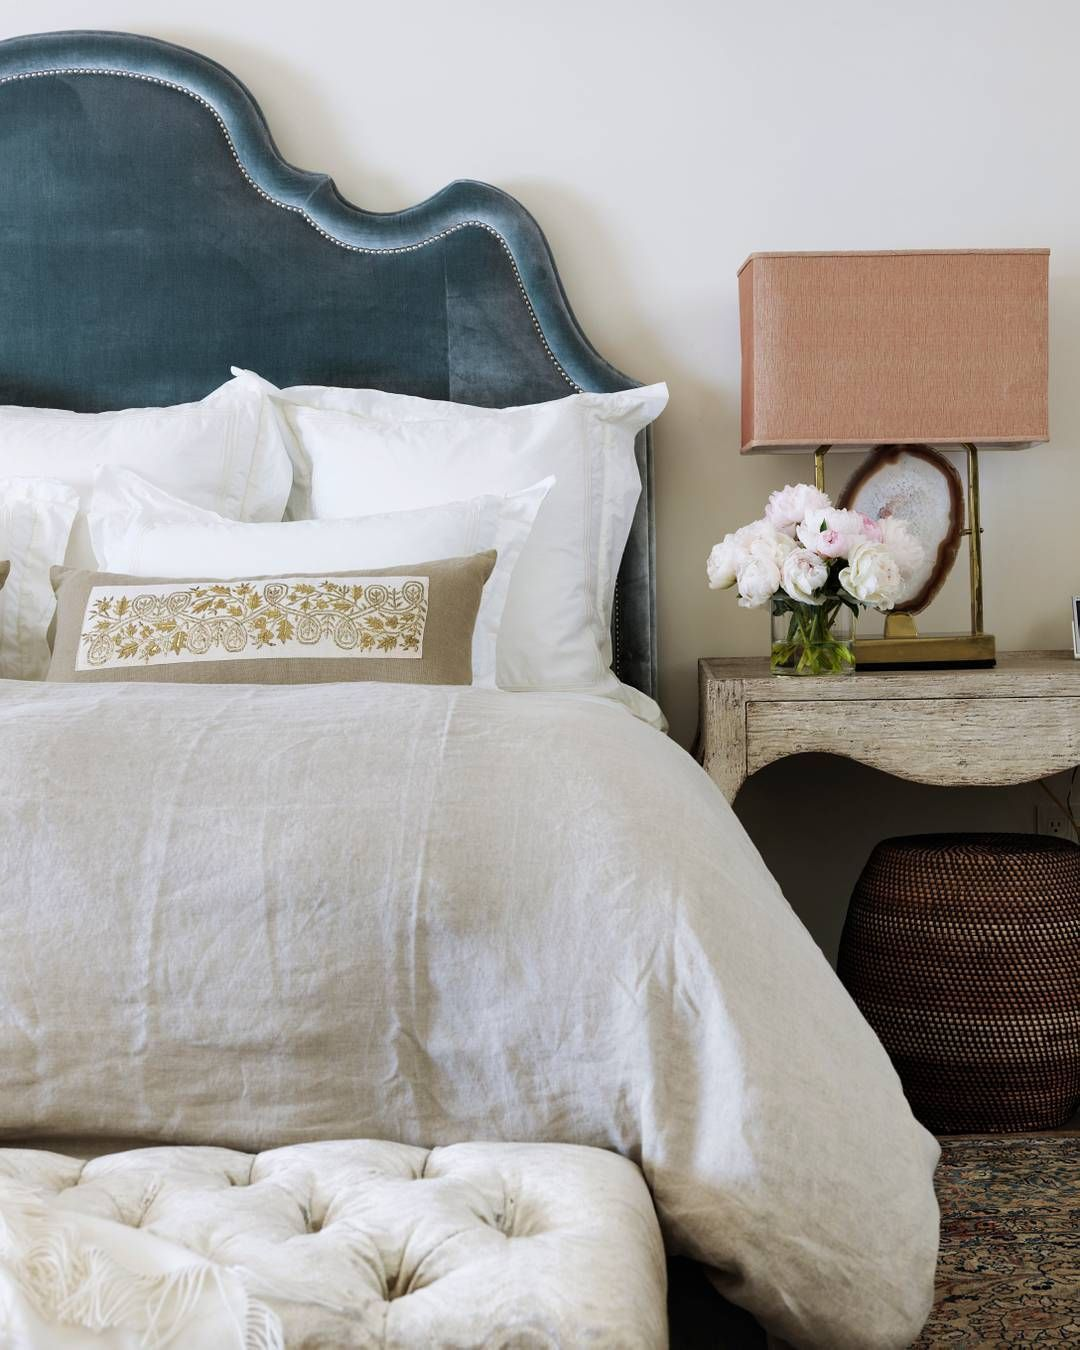 The Master Bedroom Layers Quiet Bedding From Pratesi With A Plush Nancy  Corzine Silk Velvet Headboard To Create A Soothing Retreat. The Side Table  Is By ...